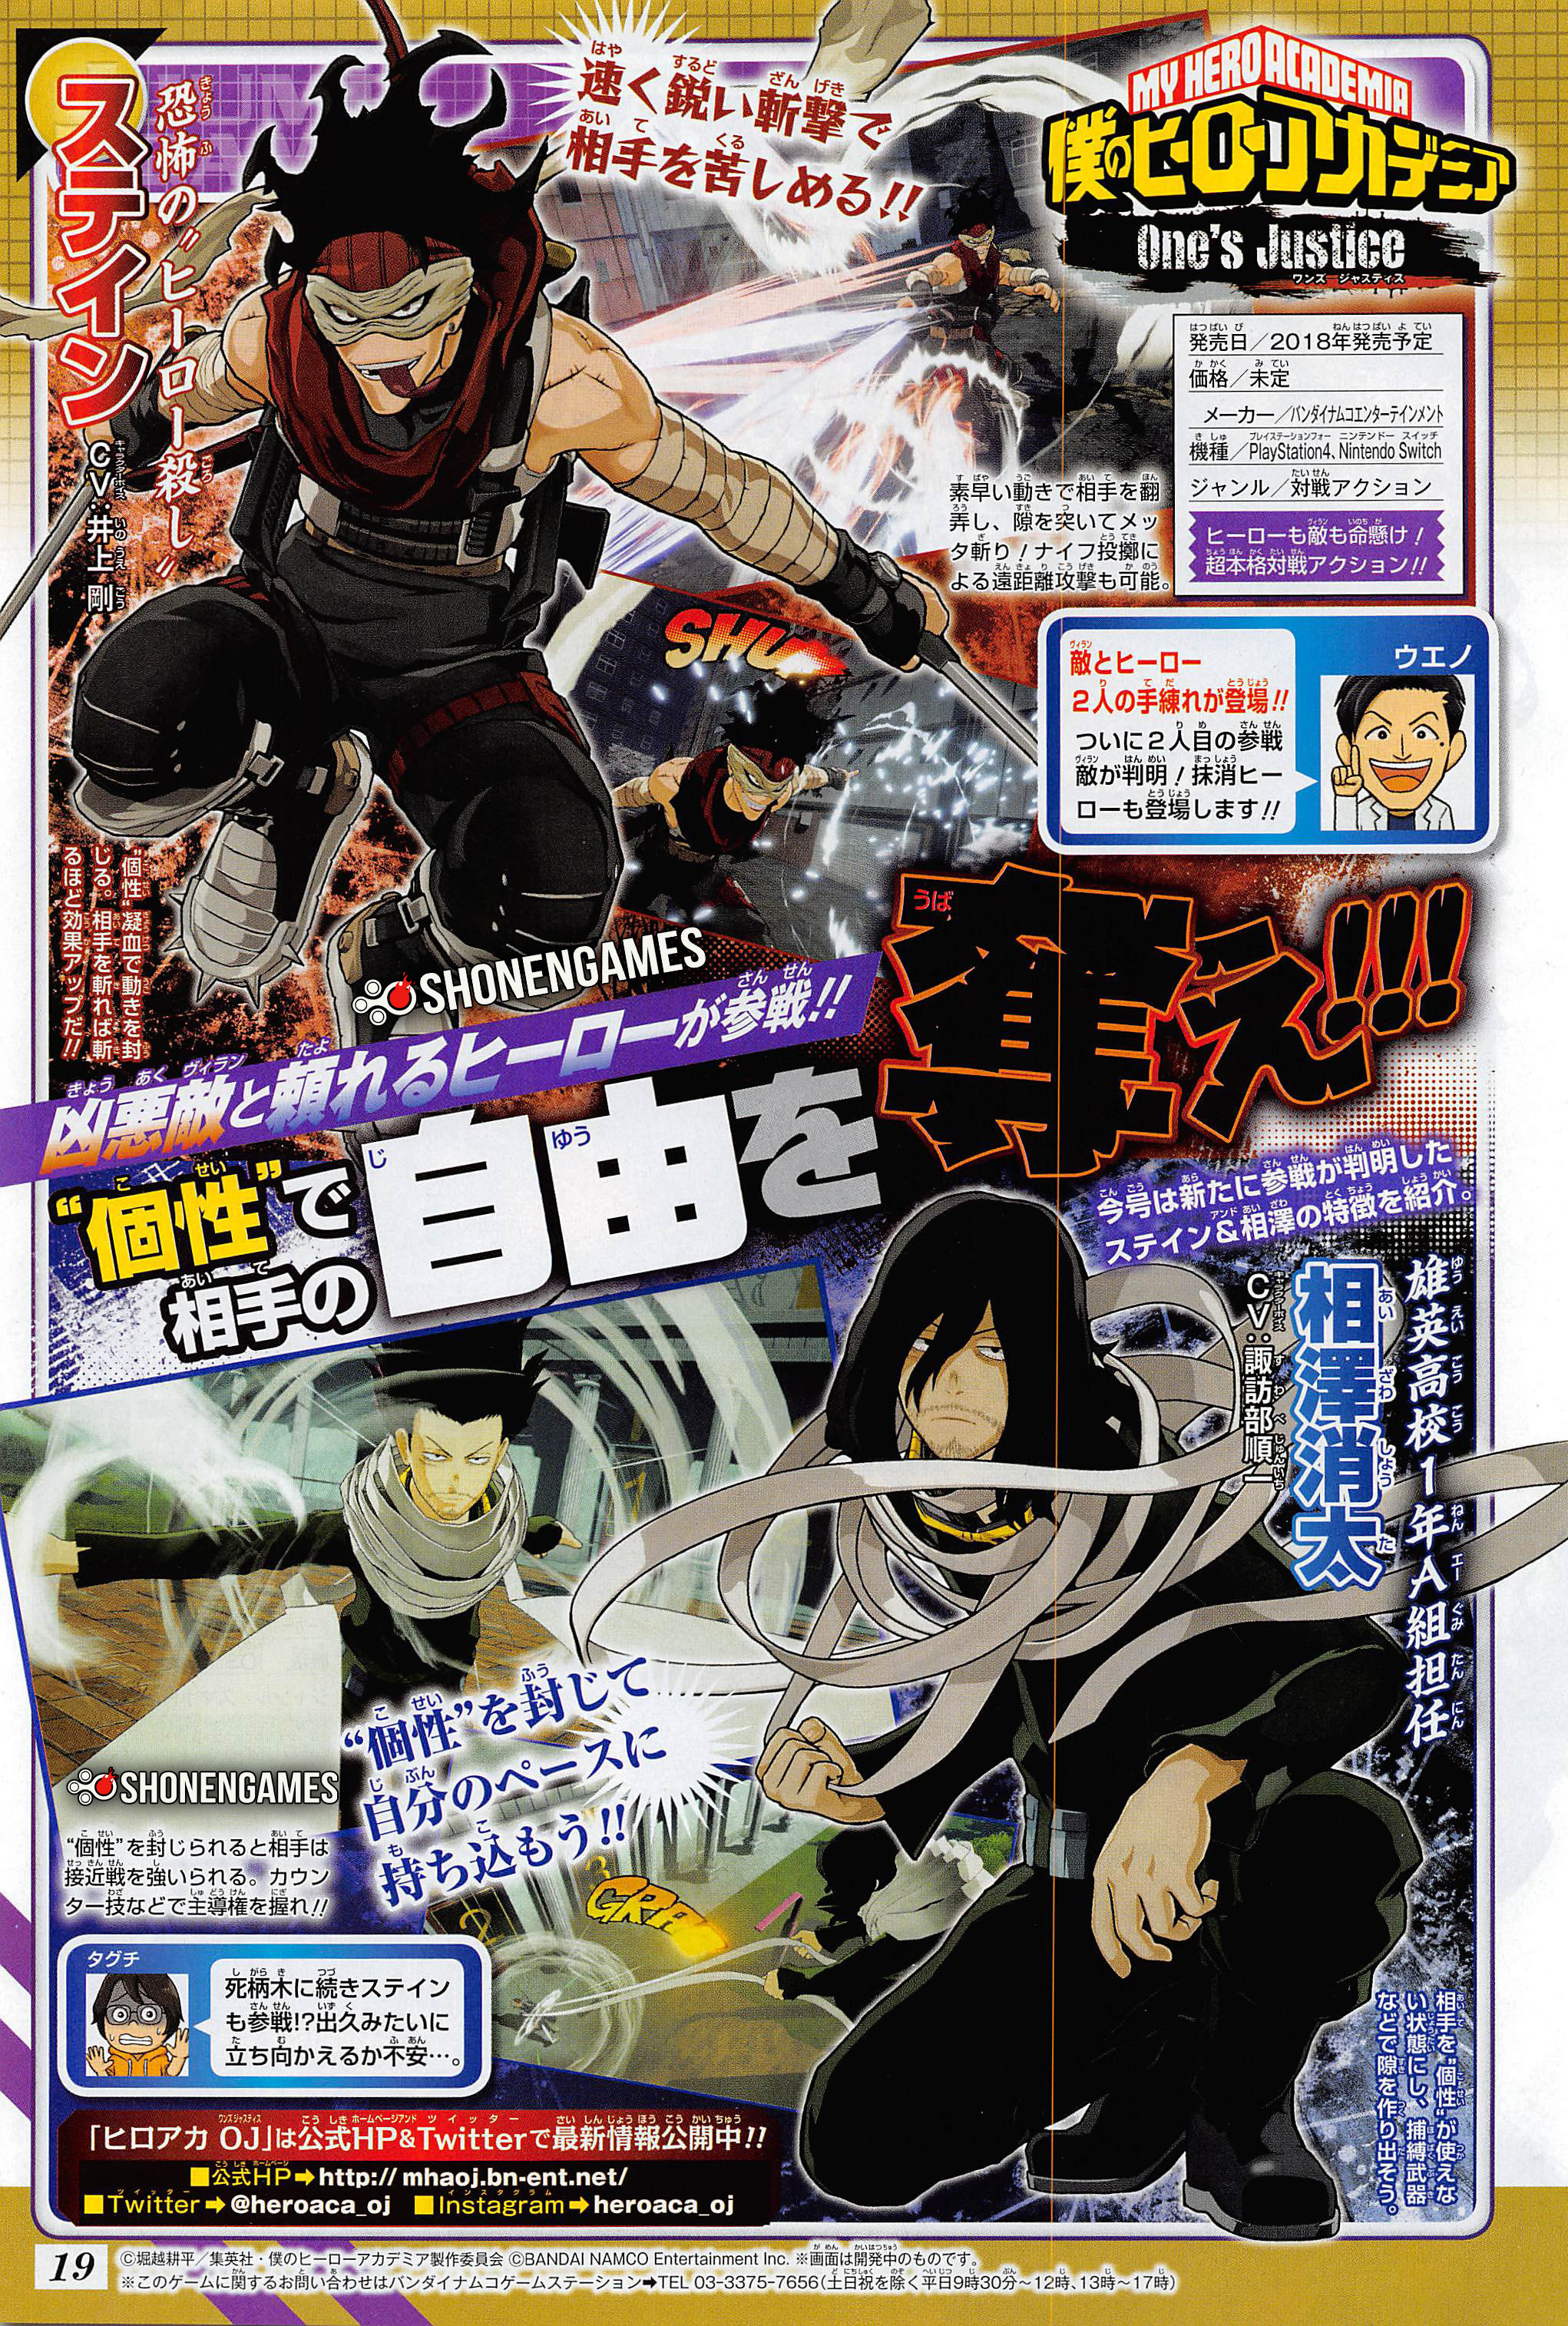 My Hero Academia: One's Justice adds Stain and Shota ...